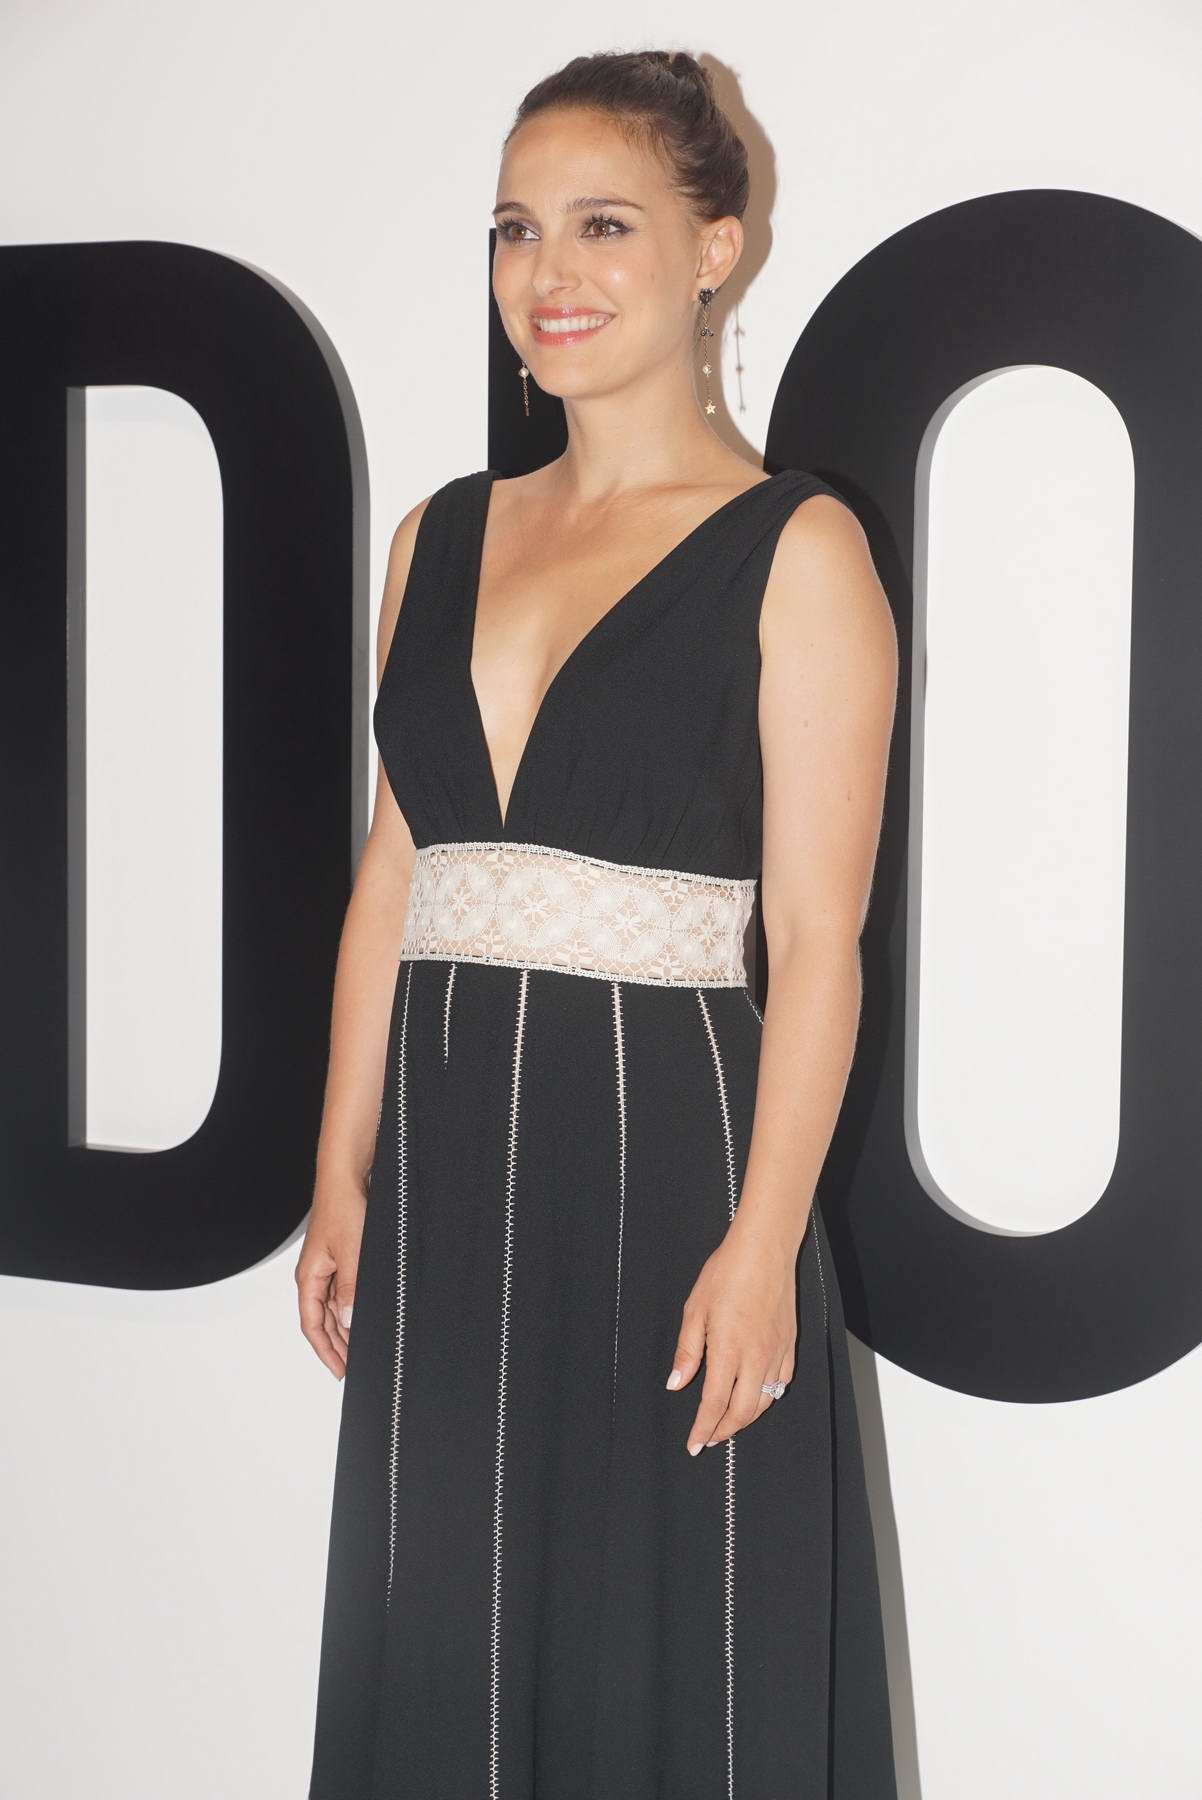 Natalie Portman attends a promotional Event of Miss Dior Blooming Bouquet in Shanghai, China